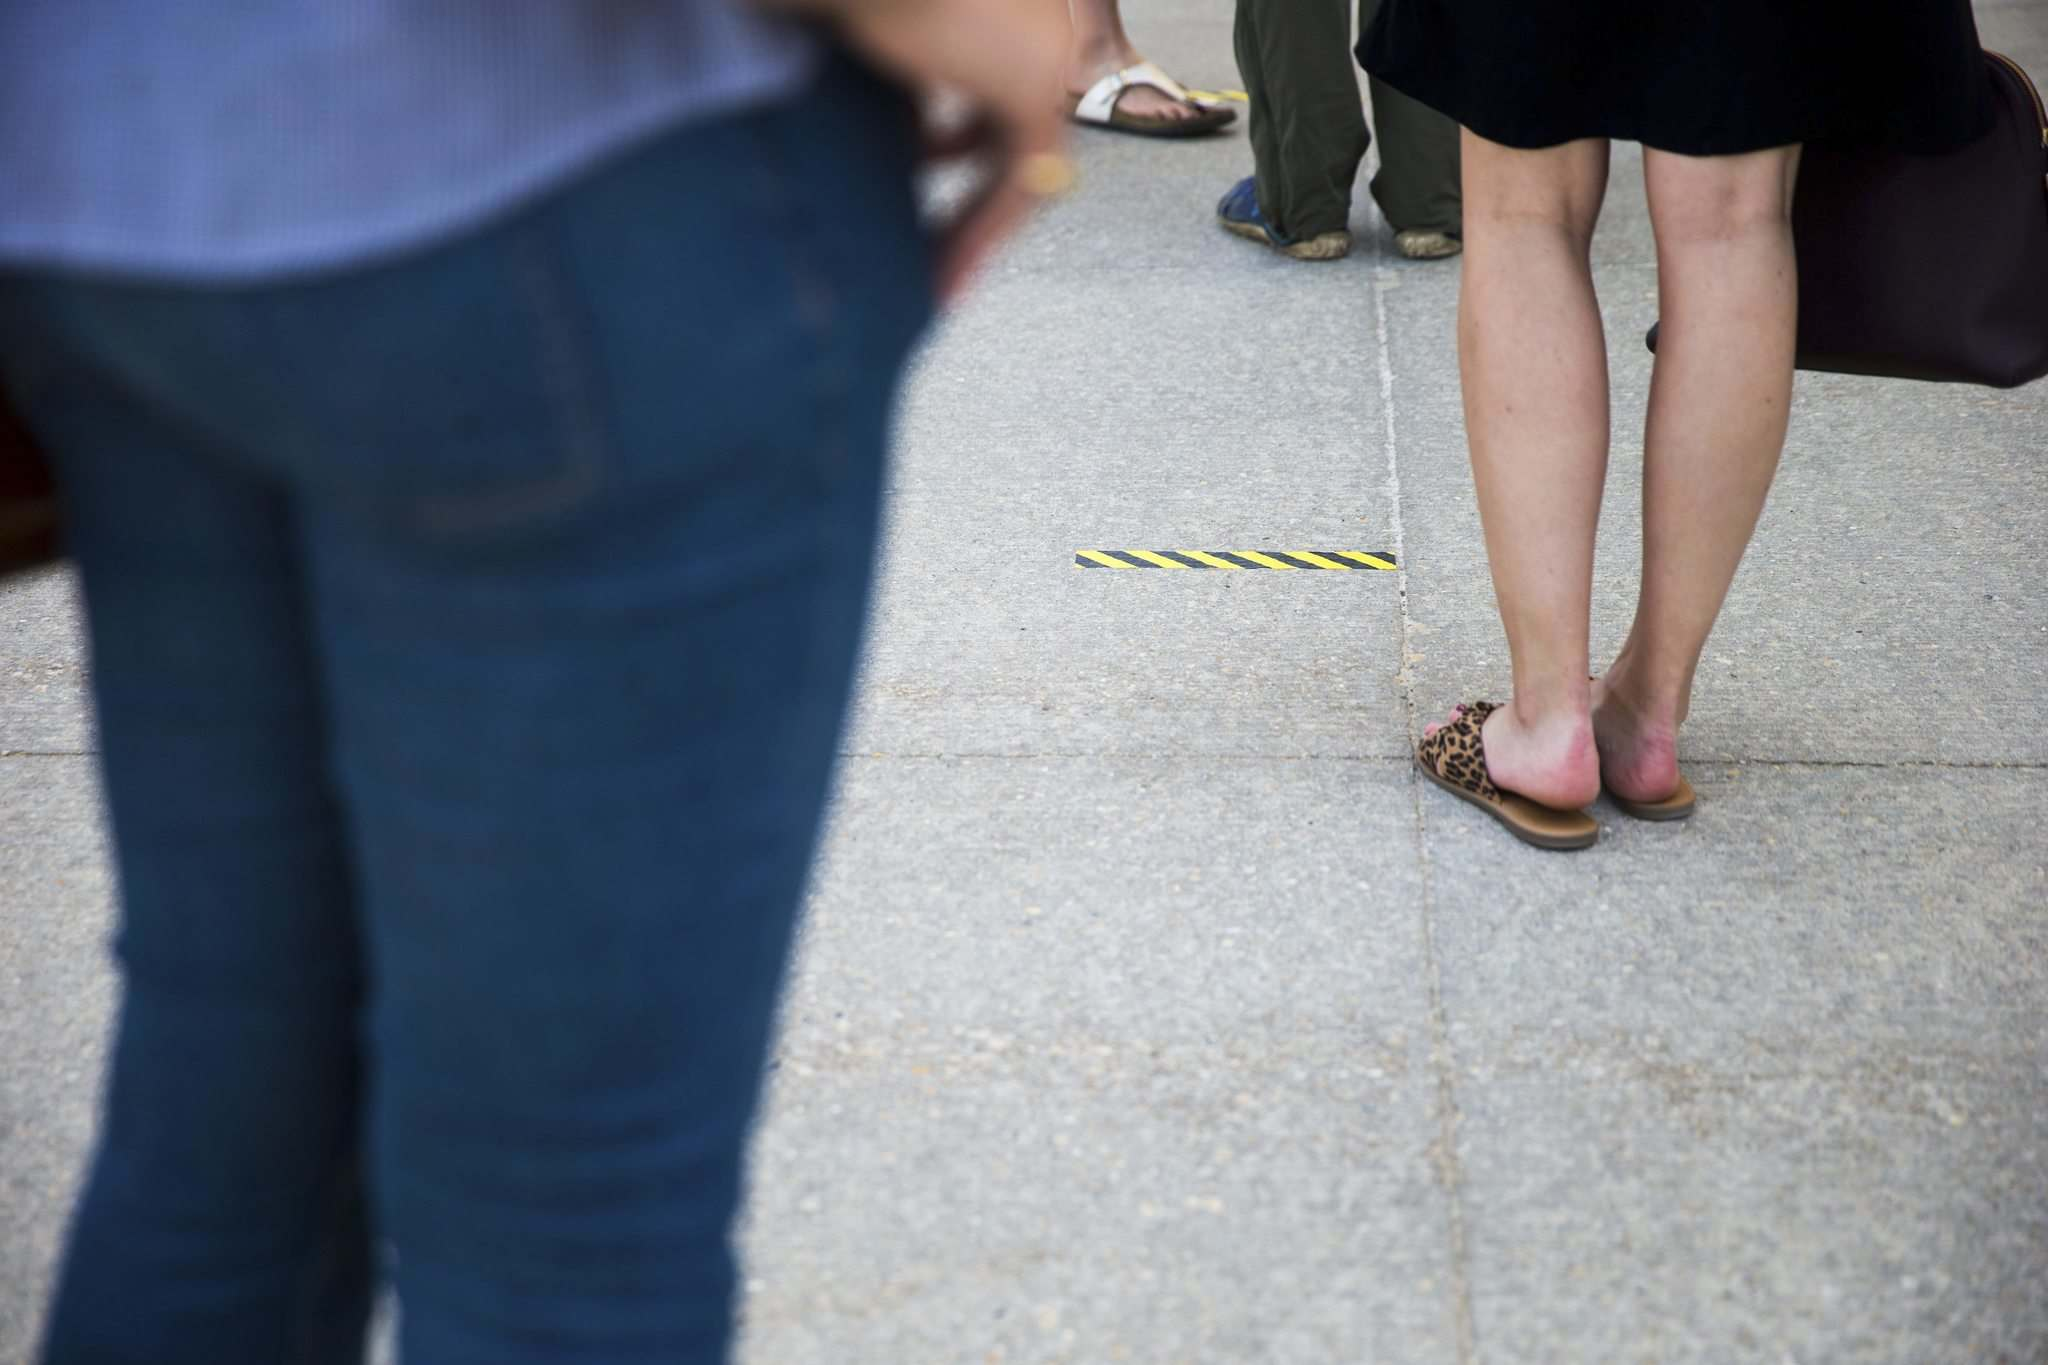 New health and safety measures at the store include strict two-metre social distancing guidelines, including floor and sidewalk decals to keep people lining up properly separated.